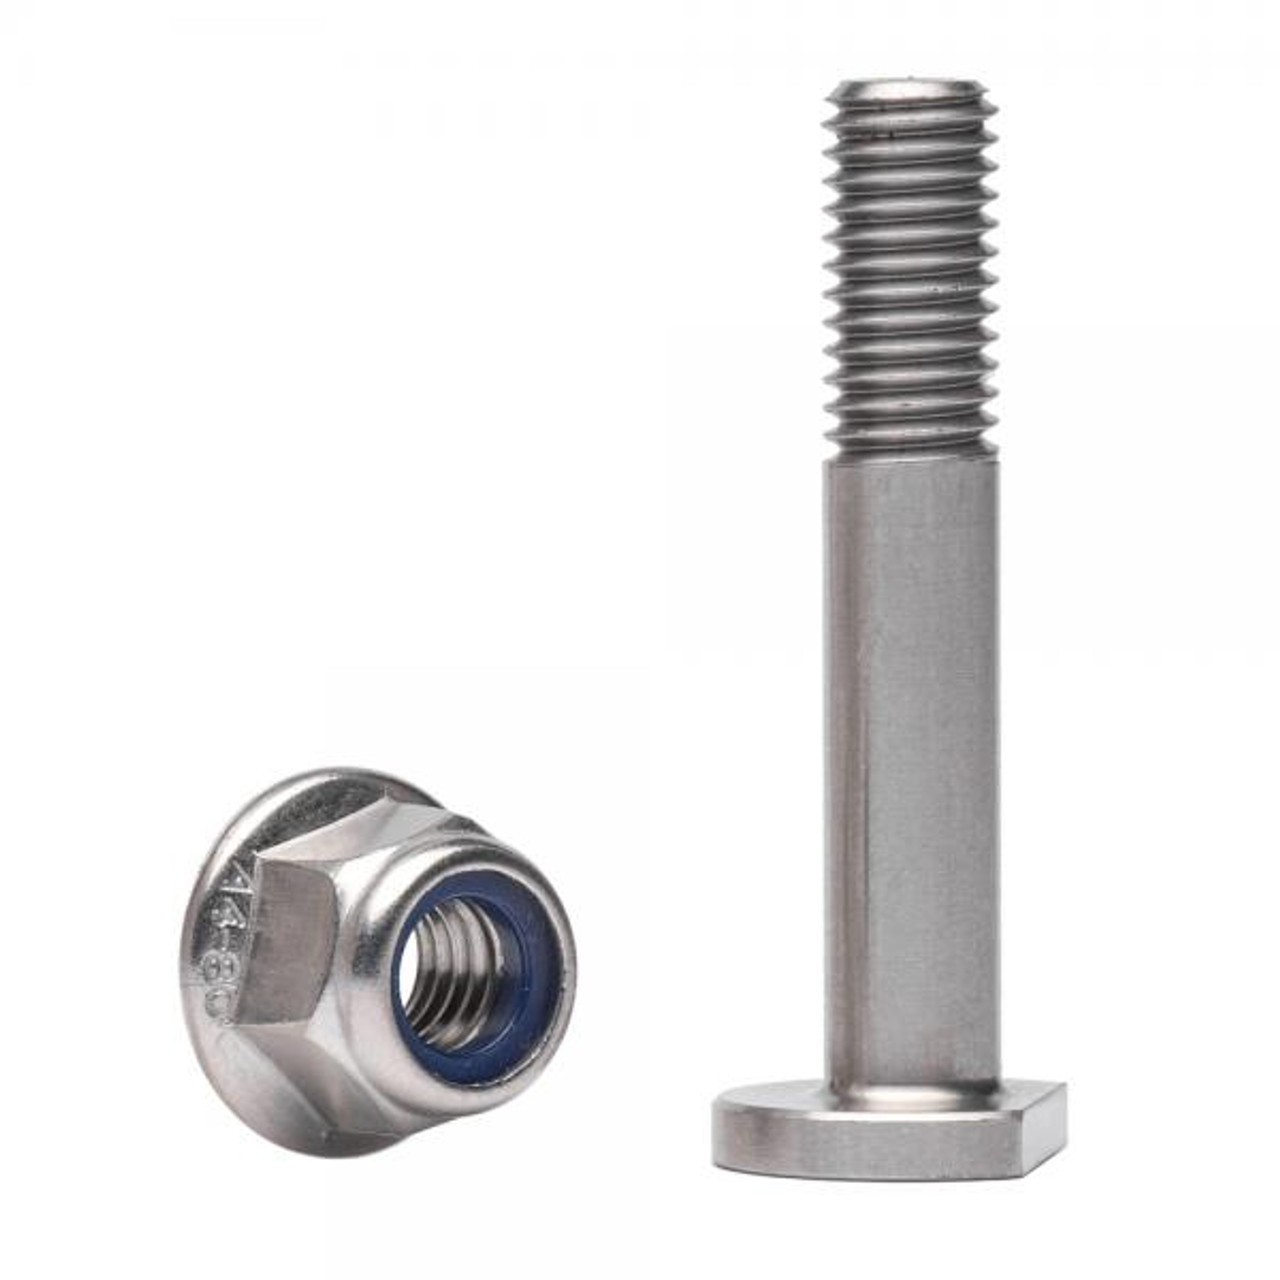 Linkage bolt and nut - extra strong